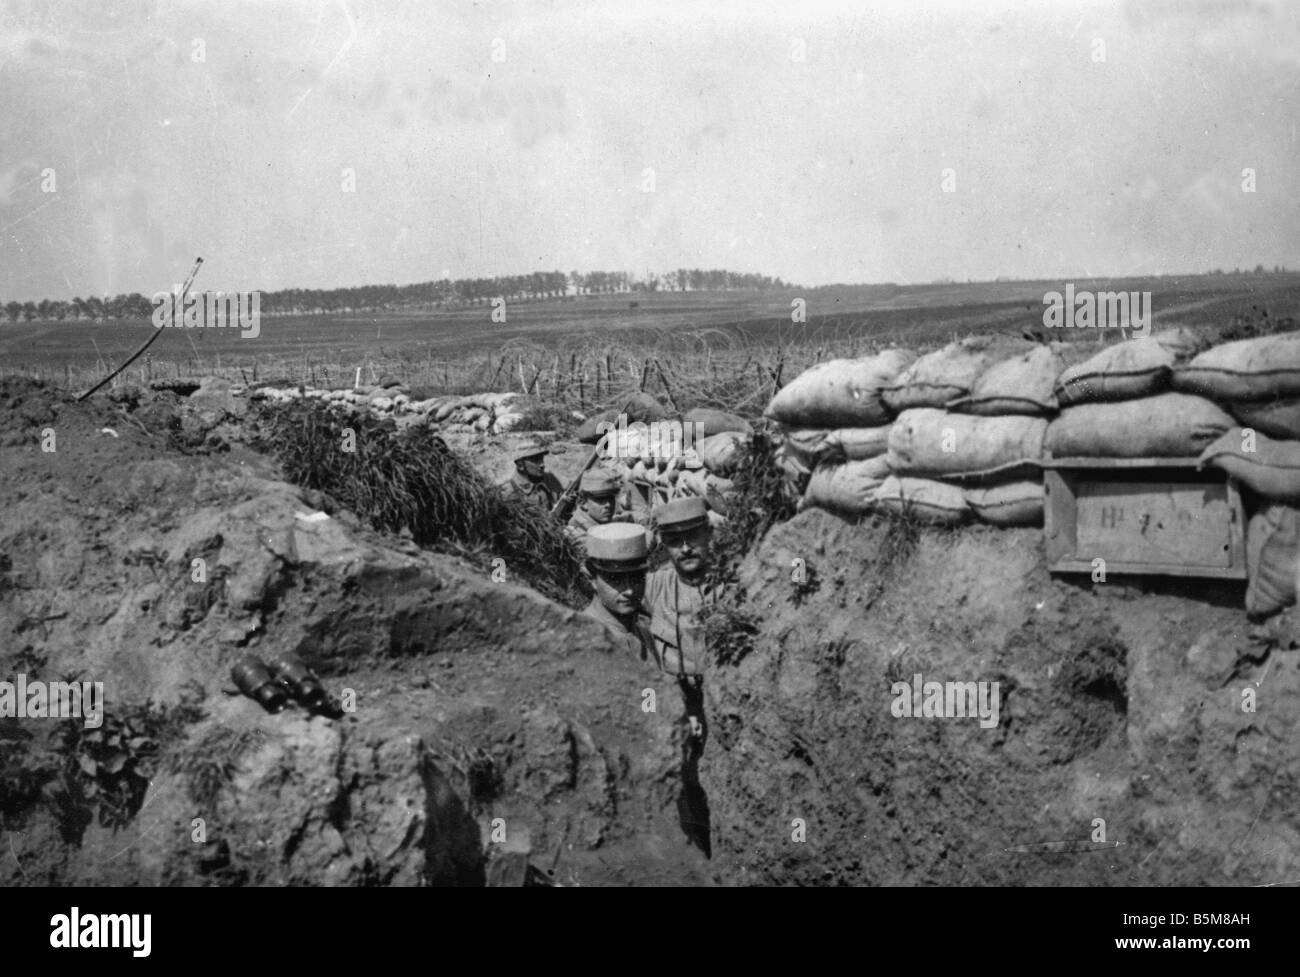 2 G55 F1 1915 14 French trenches World War I History World War I France Trench warfare French trench positions near - Stock Image